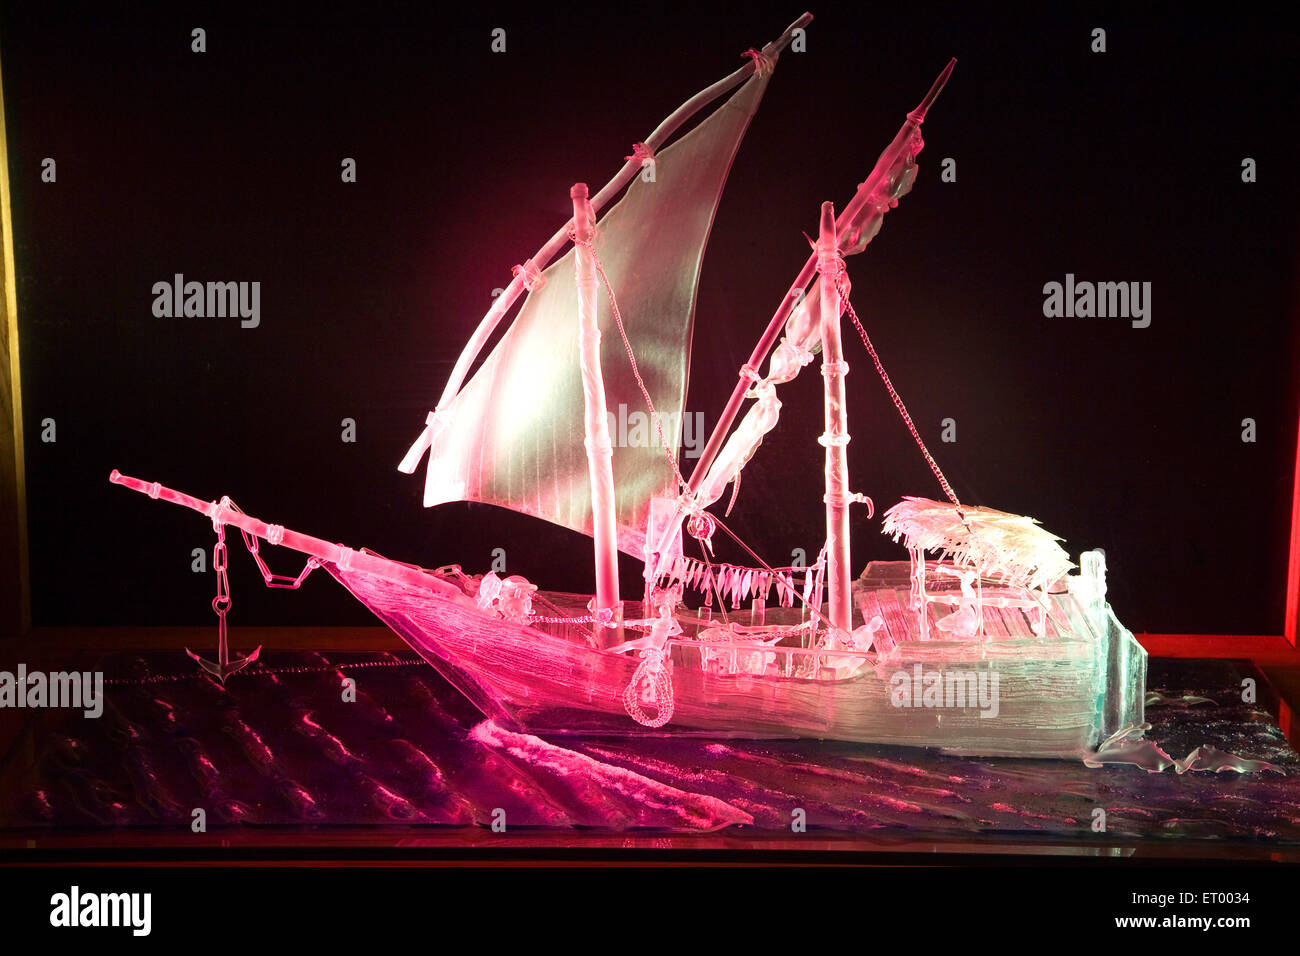 Sculpture of ship glass art on black background - Stock Image